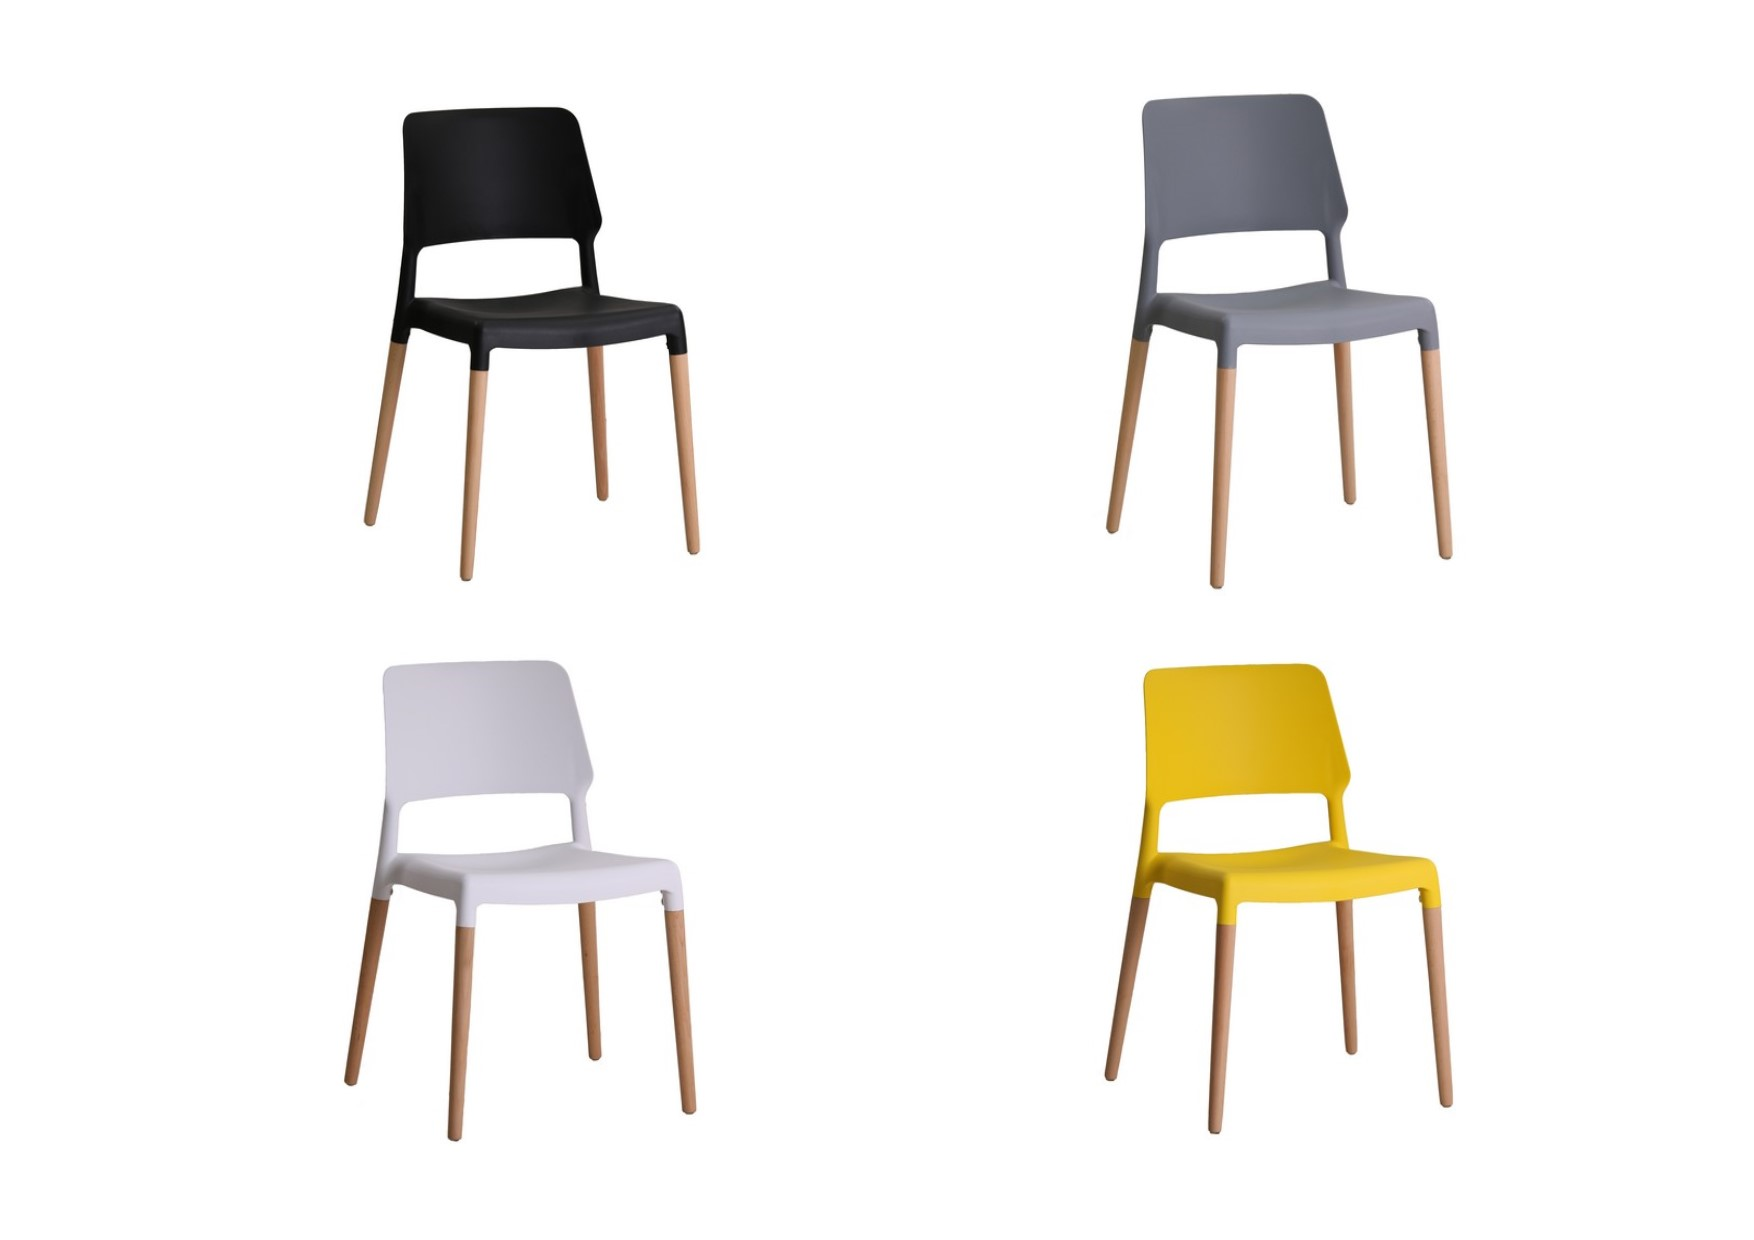 2 X Lpd Riva Modern Plastic Dining Chairs Beech Legs Black Grey White Yellow